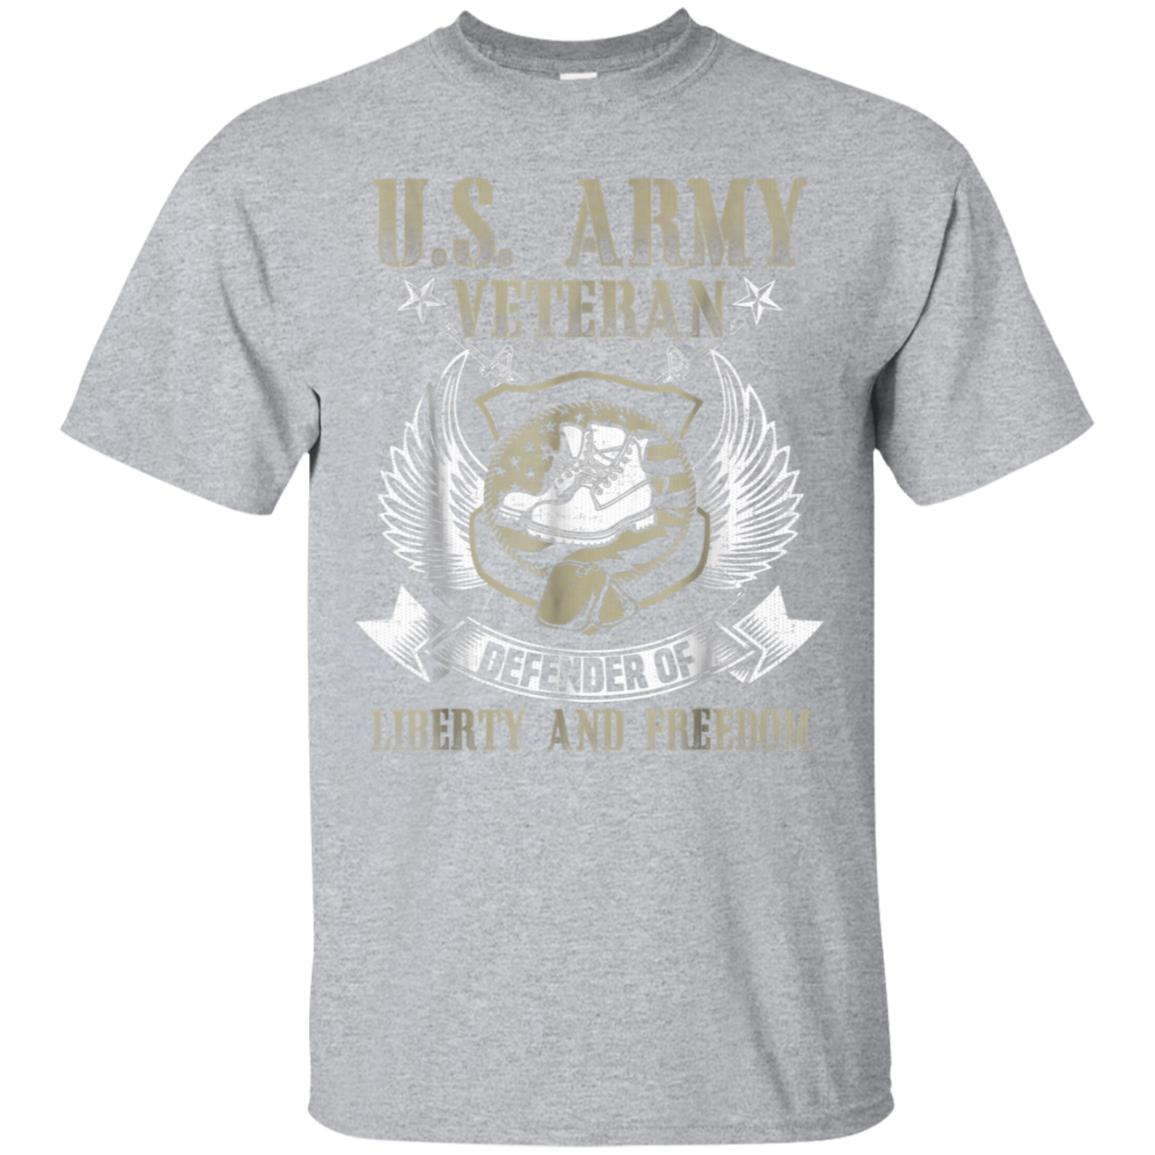 u.s. army veteran tshirt defender of liberty and freedom 99promocode